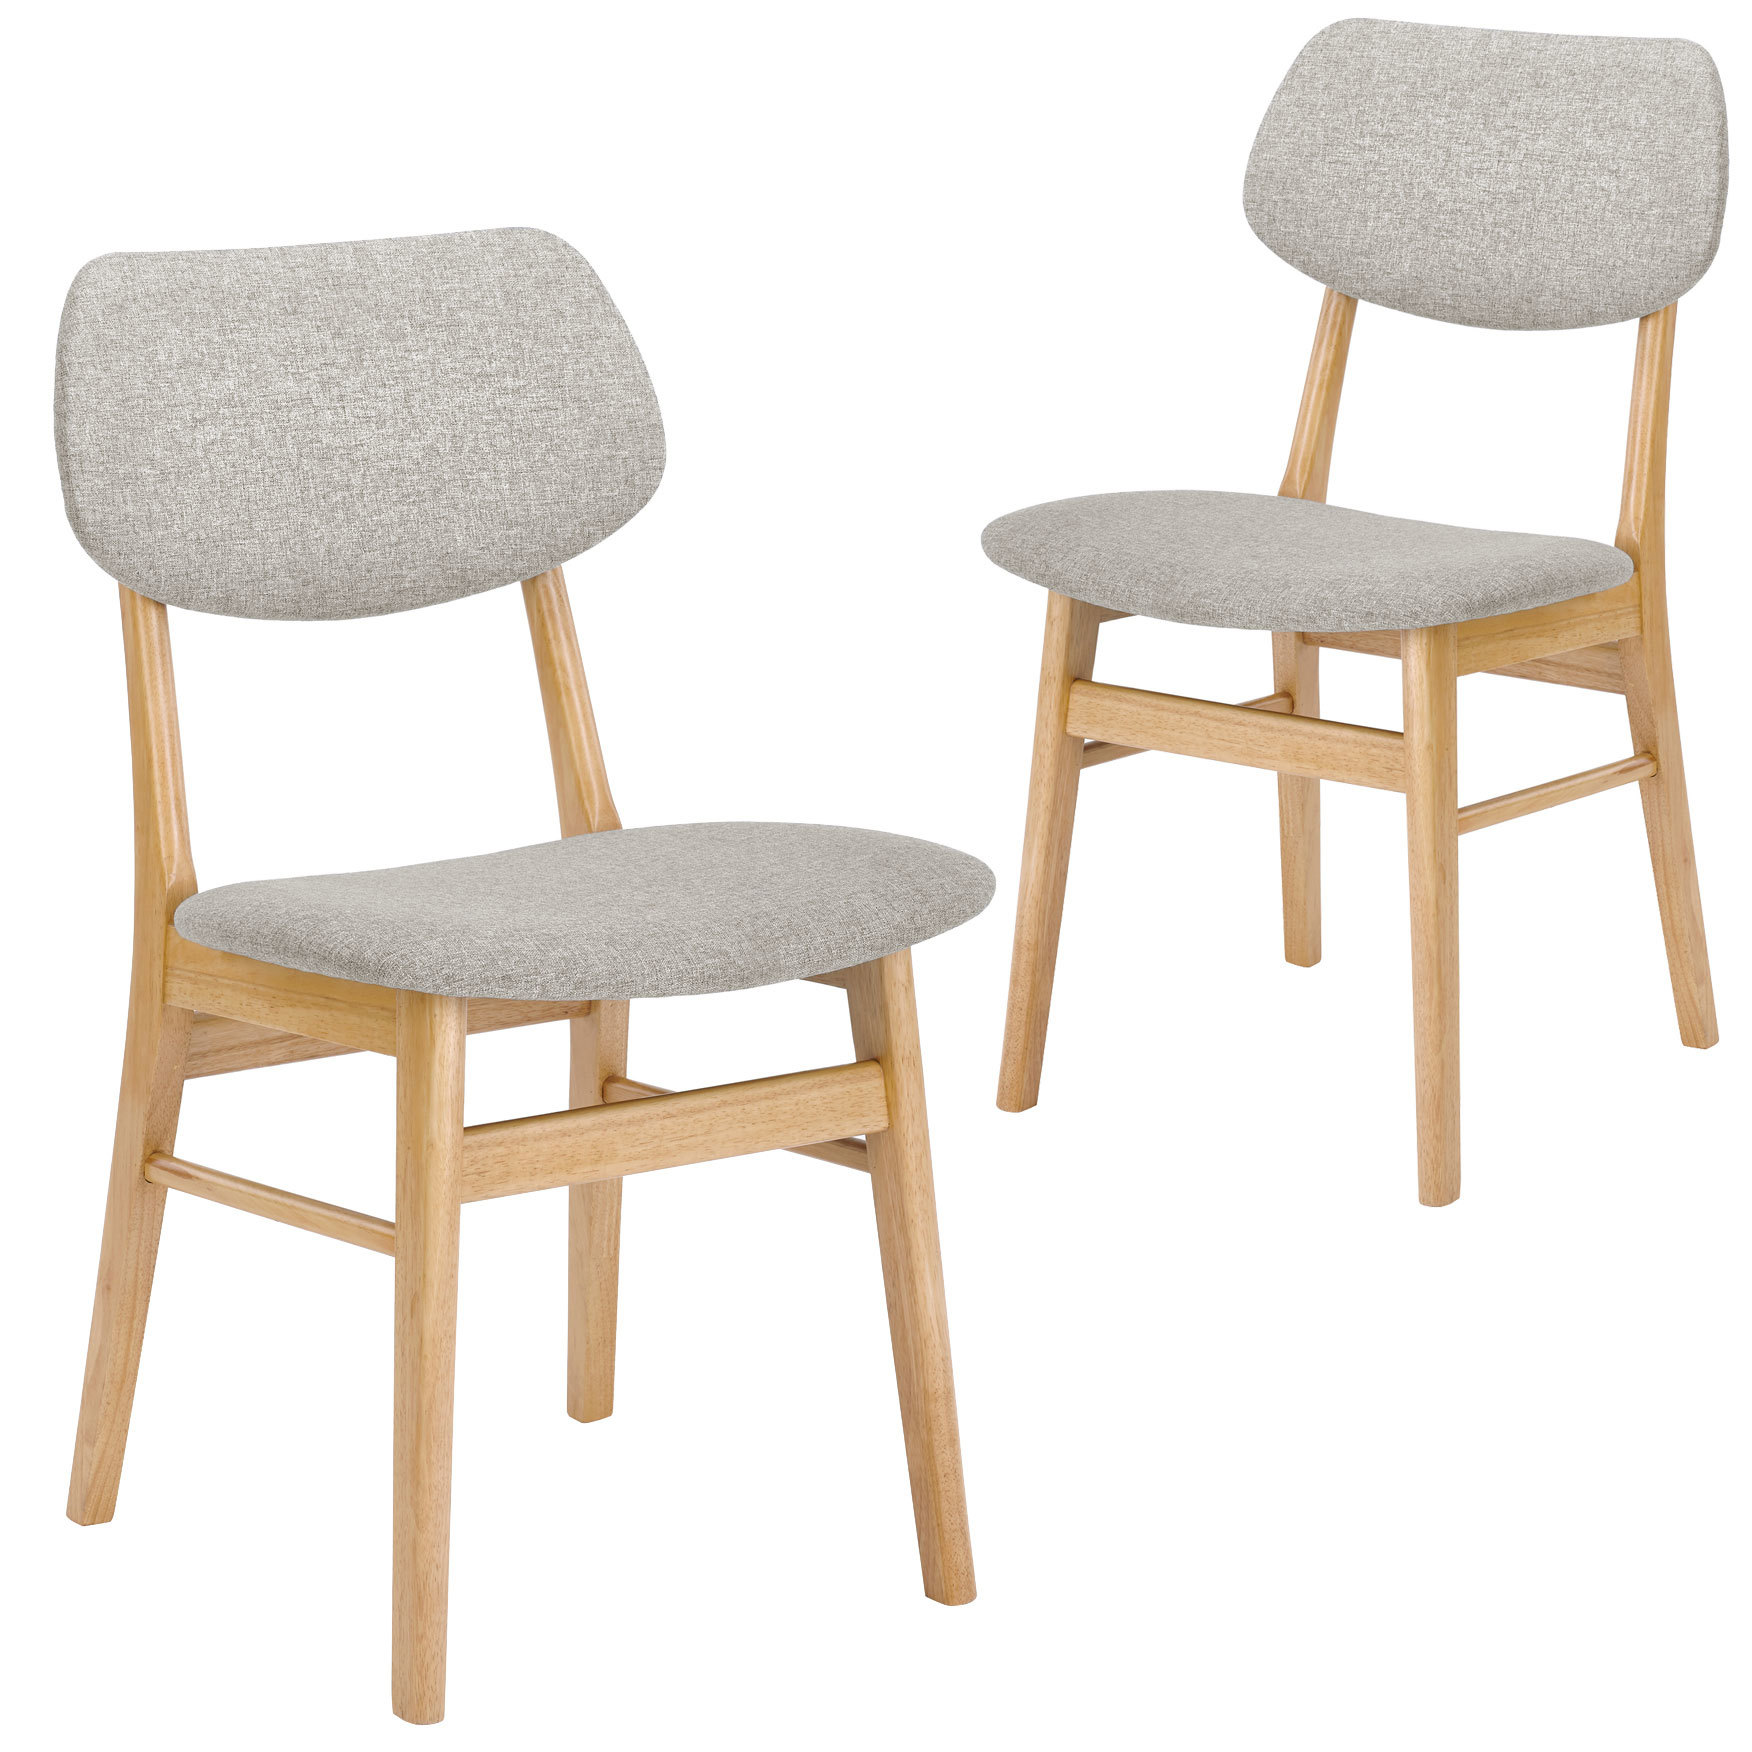 Pew Chairs Soho Dining Chairs